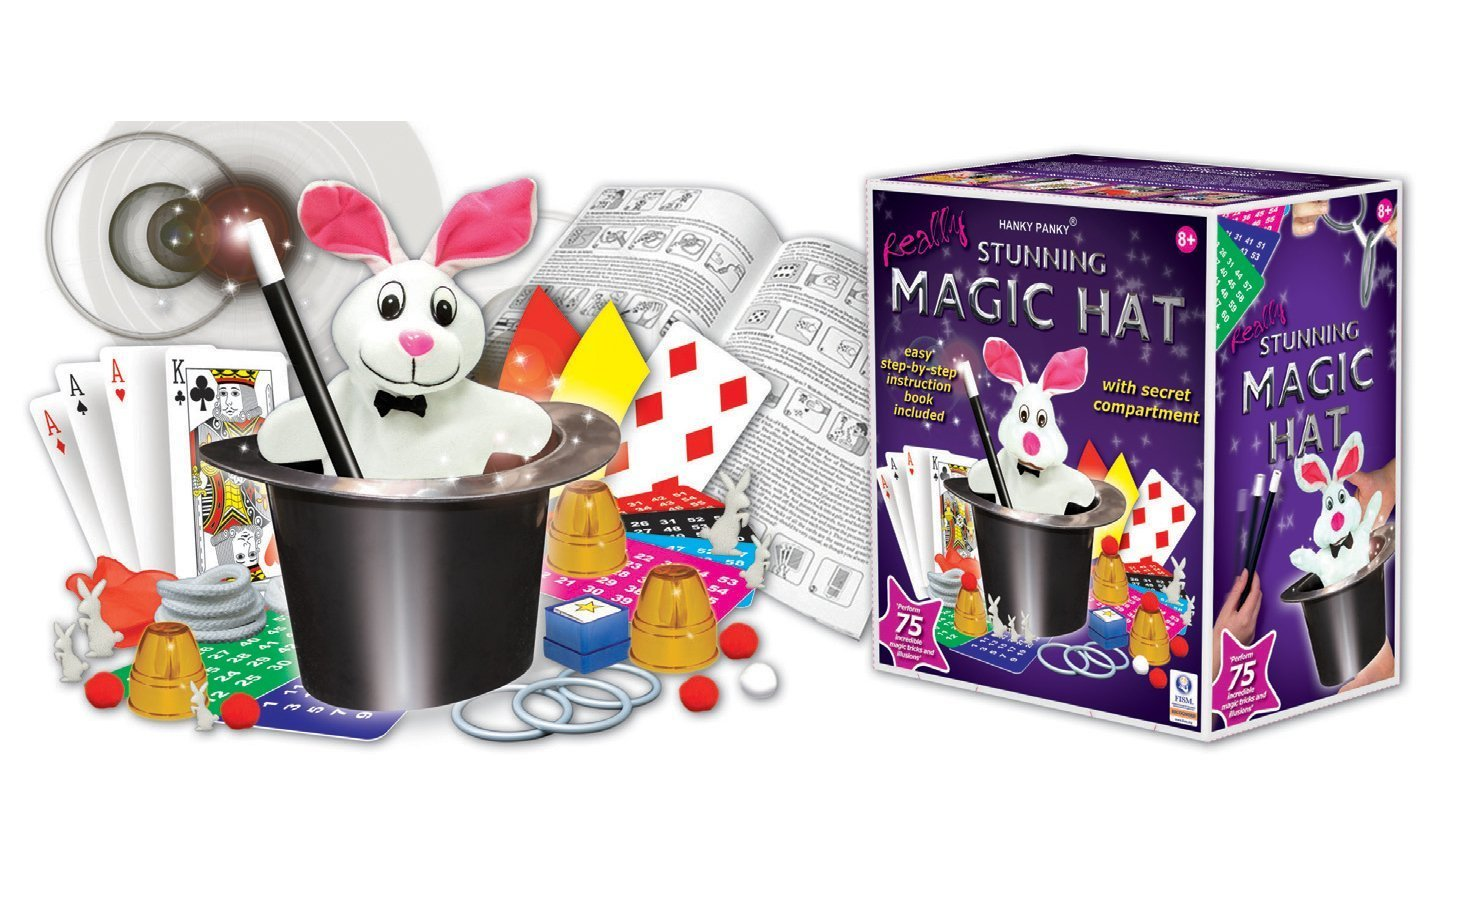 Stunning Magic Hat, Made by Hanky Panky Toys. Easy step-by-step instruction booklet included stunning-magic-hat